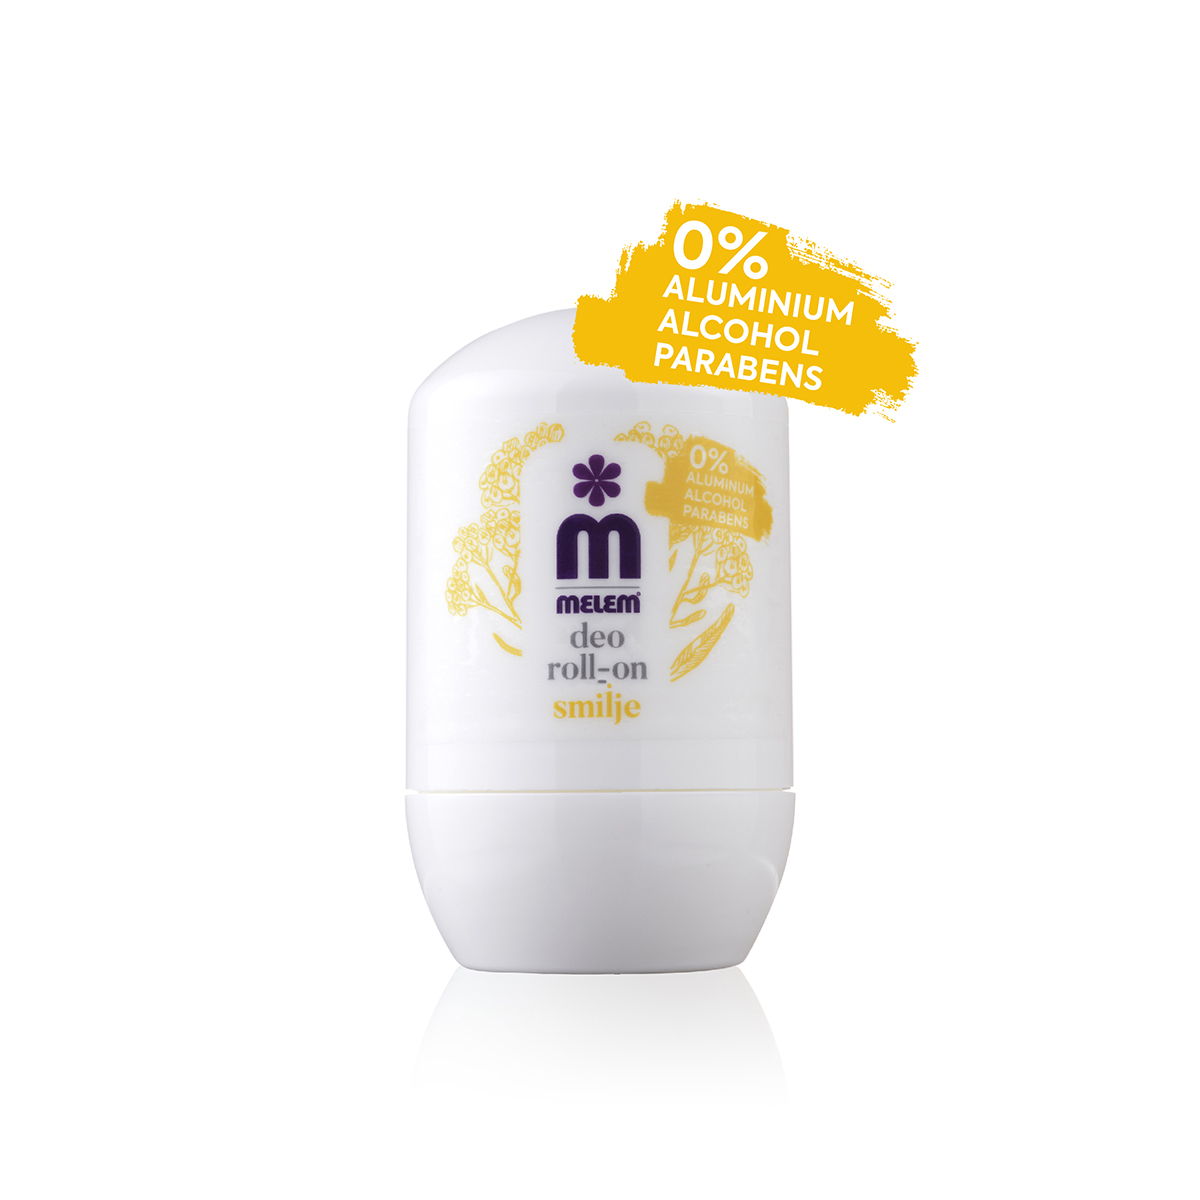 Melem deo roll-on smilje 50 ml